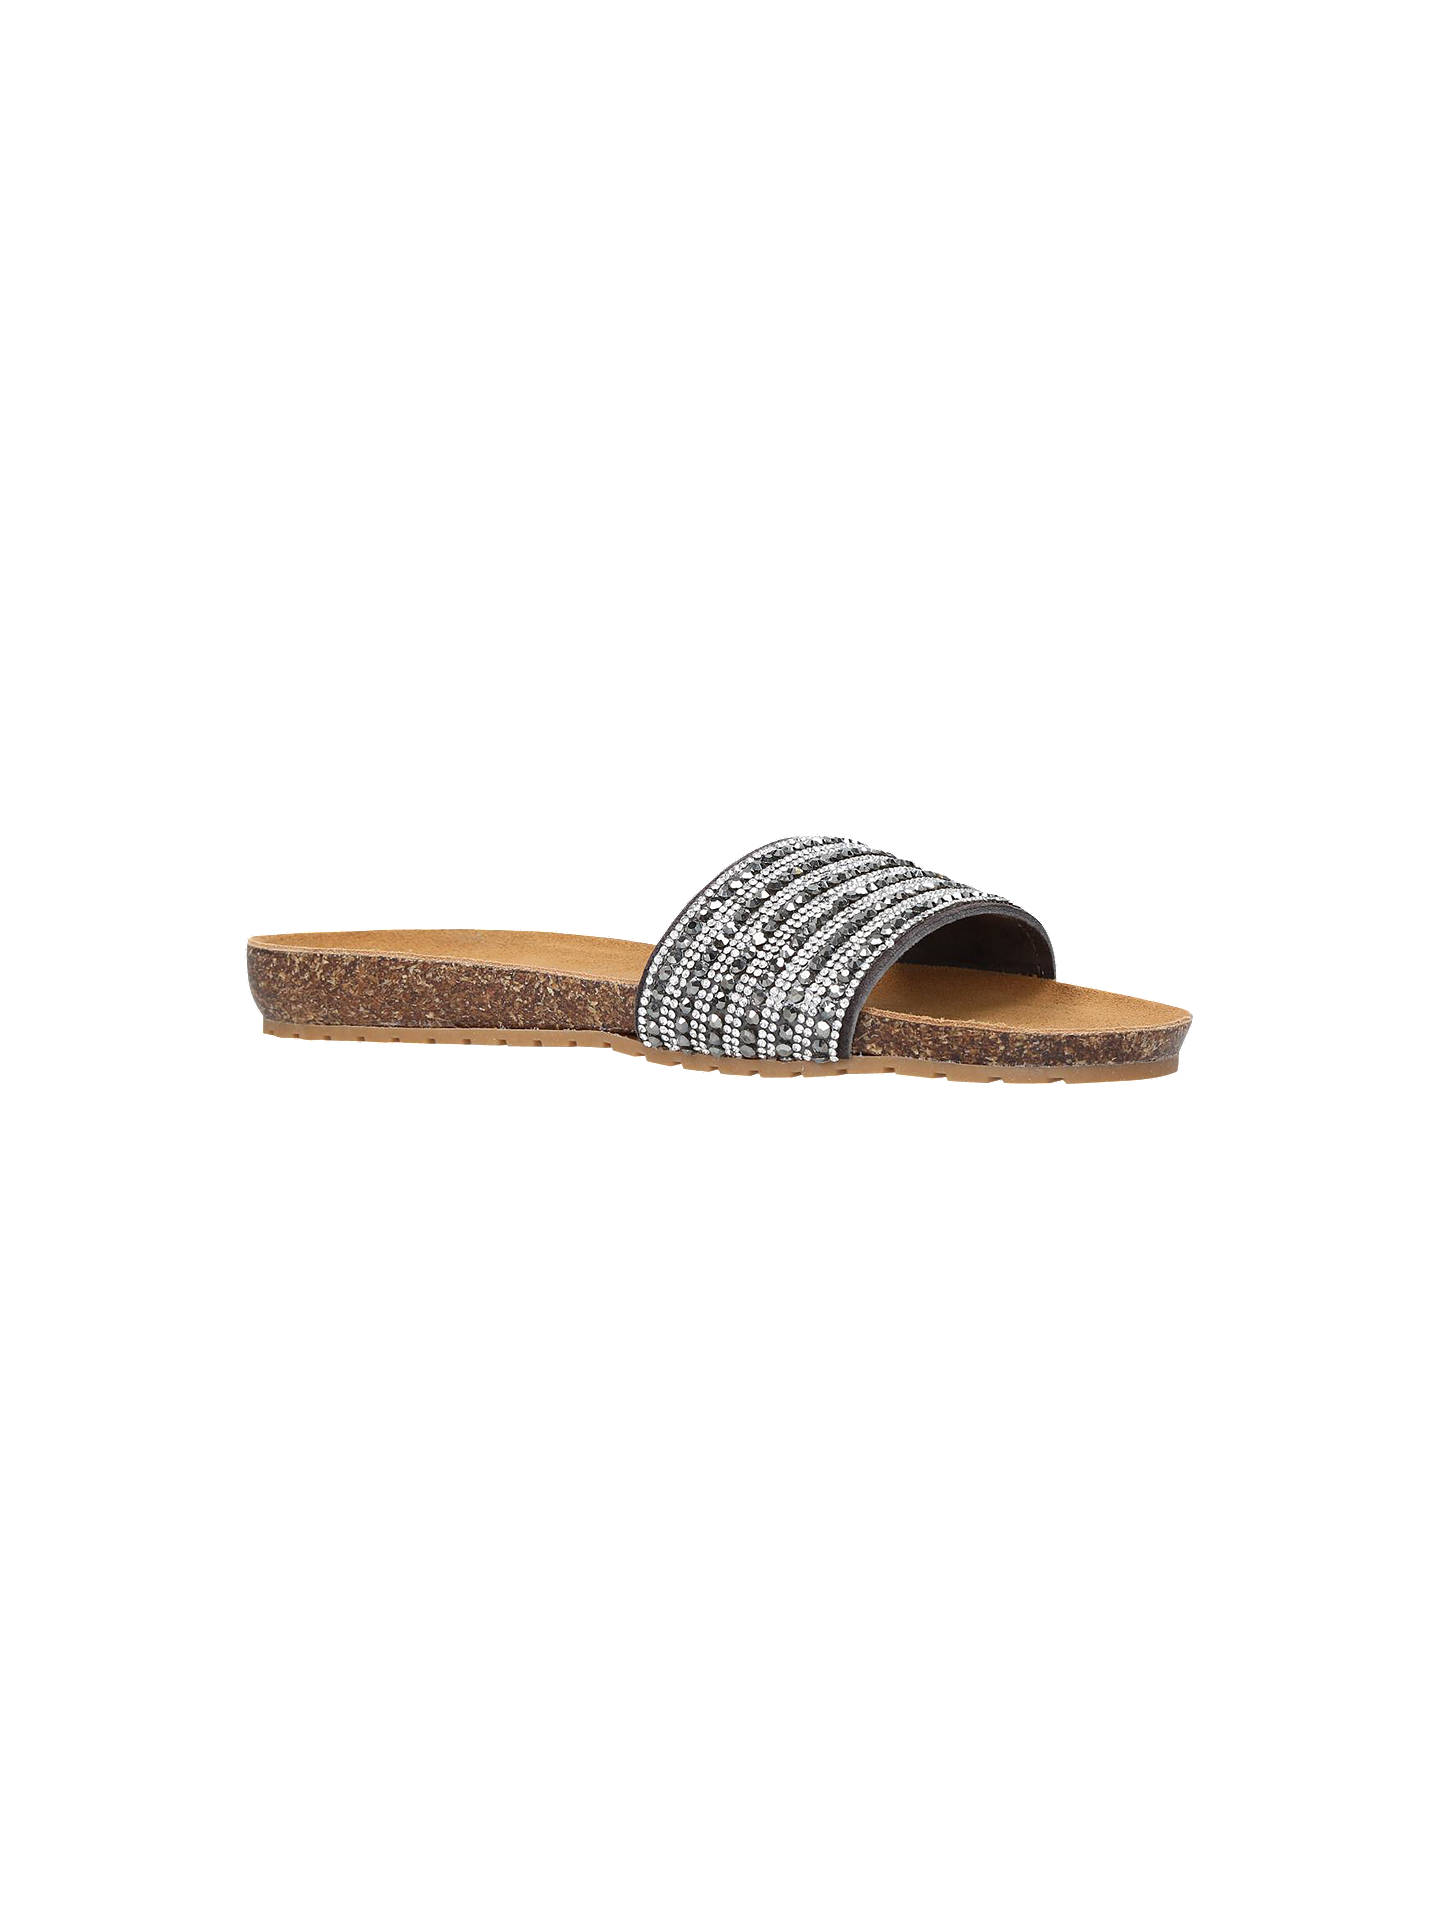 BuyCarvela Comfort Super Suede Slip On Sandals, Pewter, 5 Online at johnlewis.com